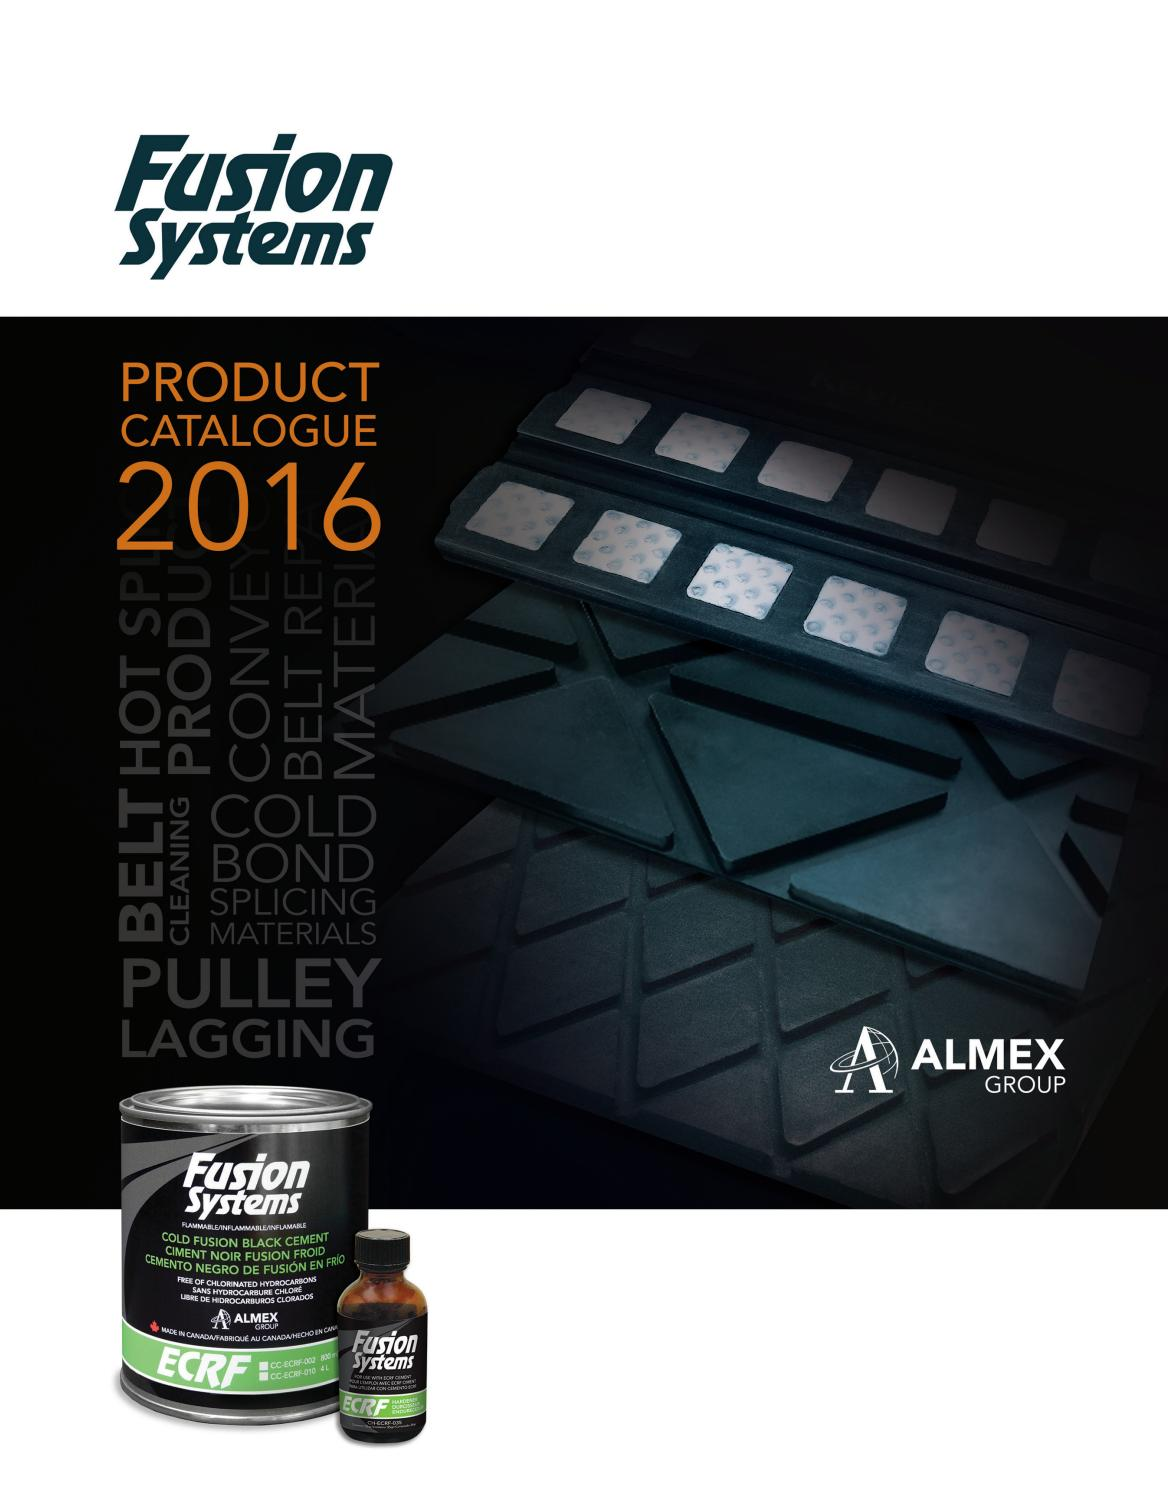 2016 Fusion Catalogue By Almex Group Issuu